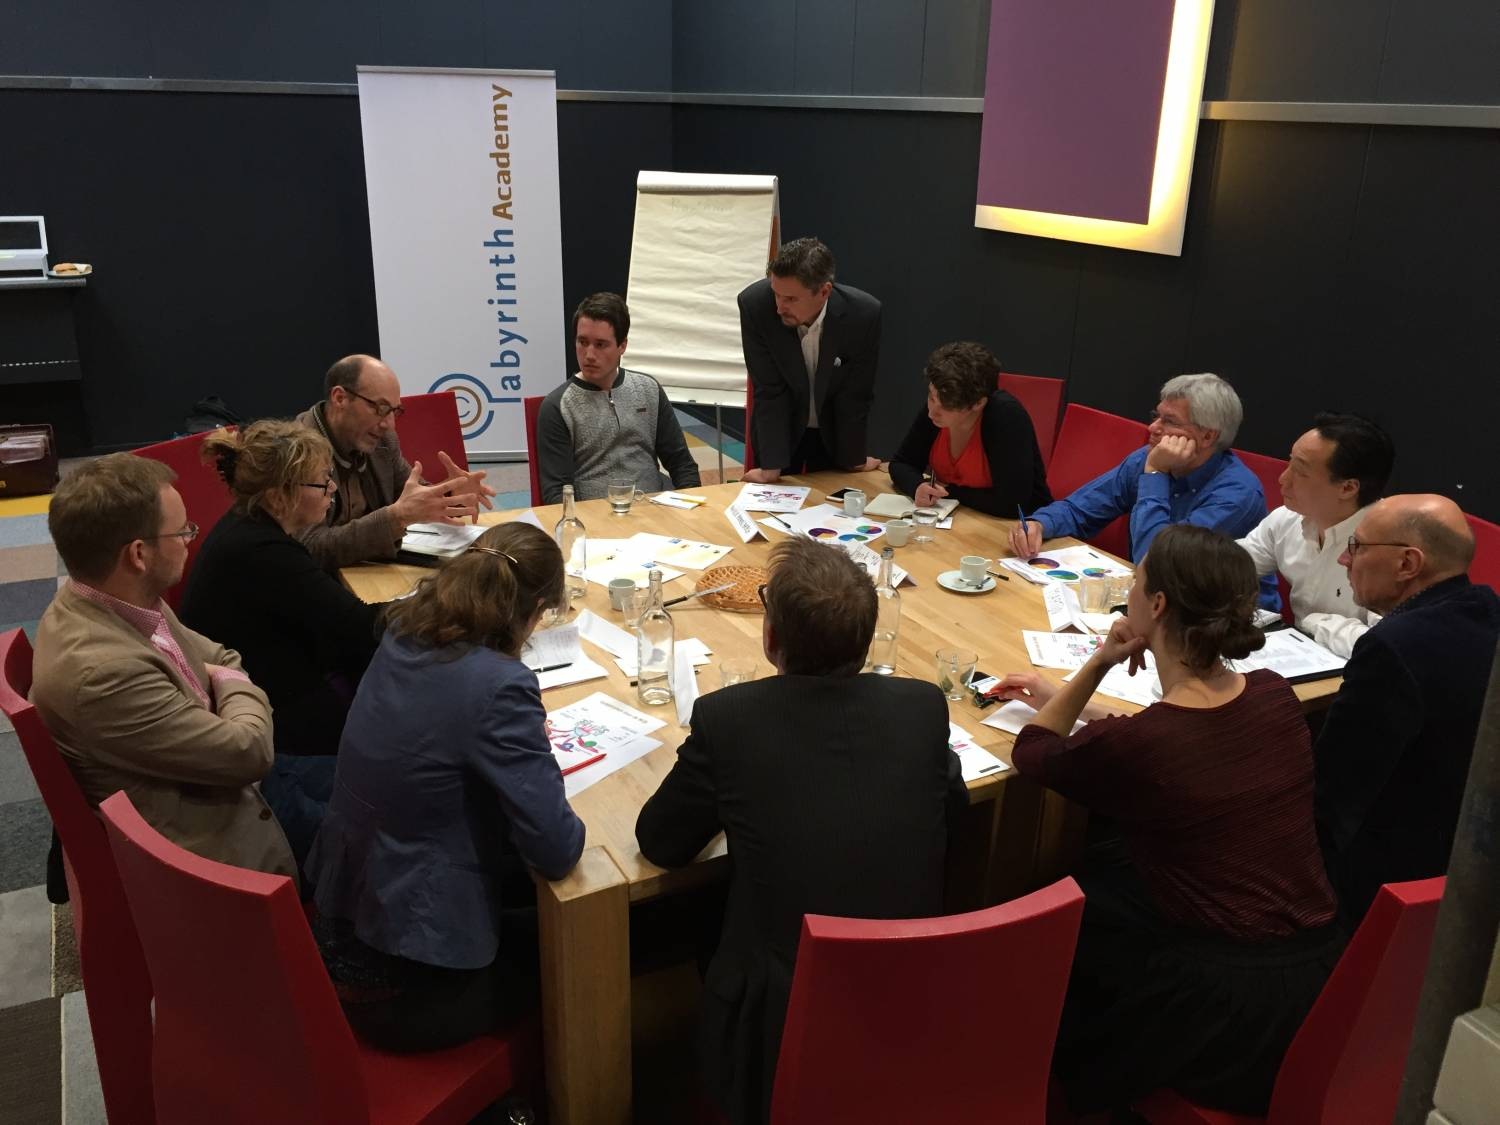 Verslag workshop Geldstromen door de Wijk 27 januari 2015